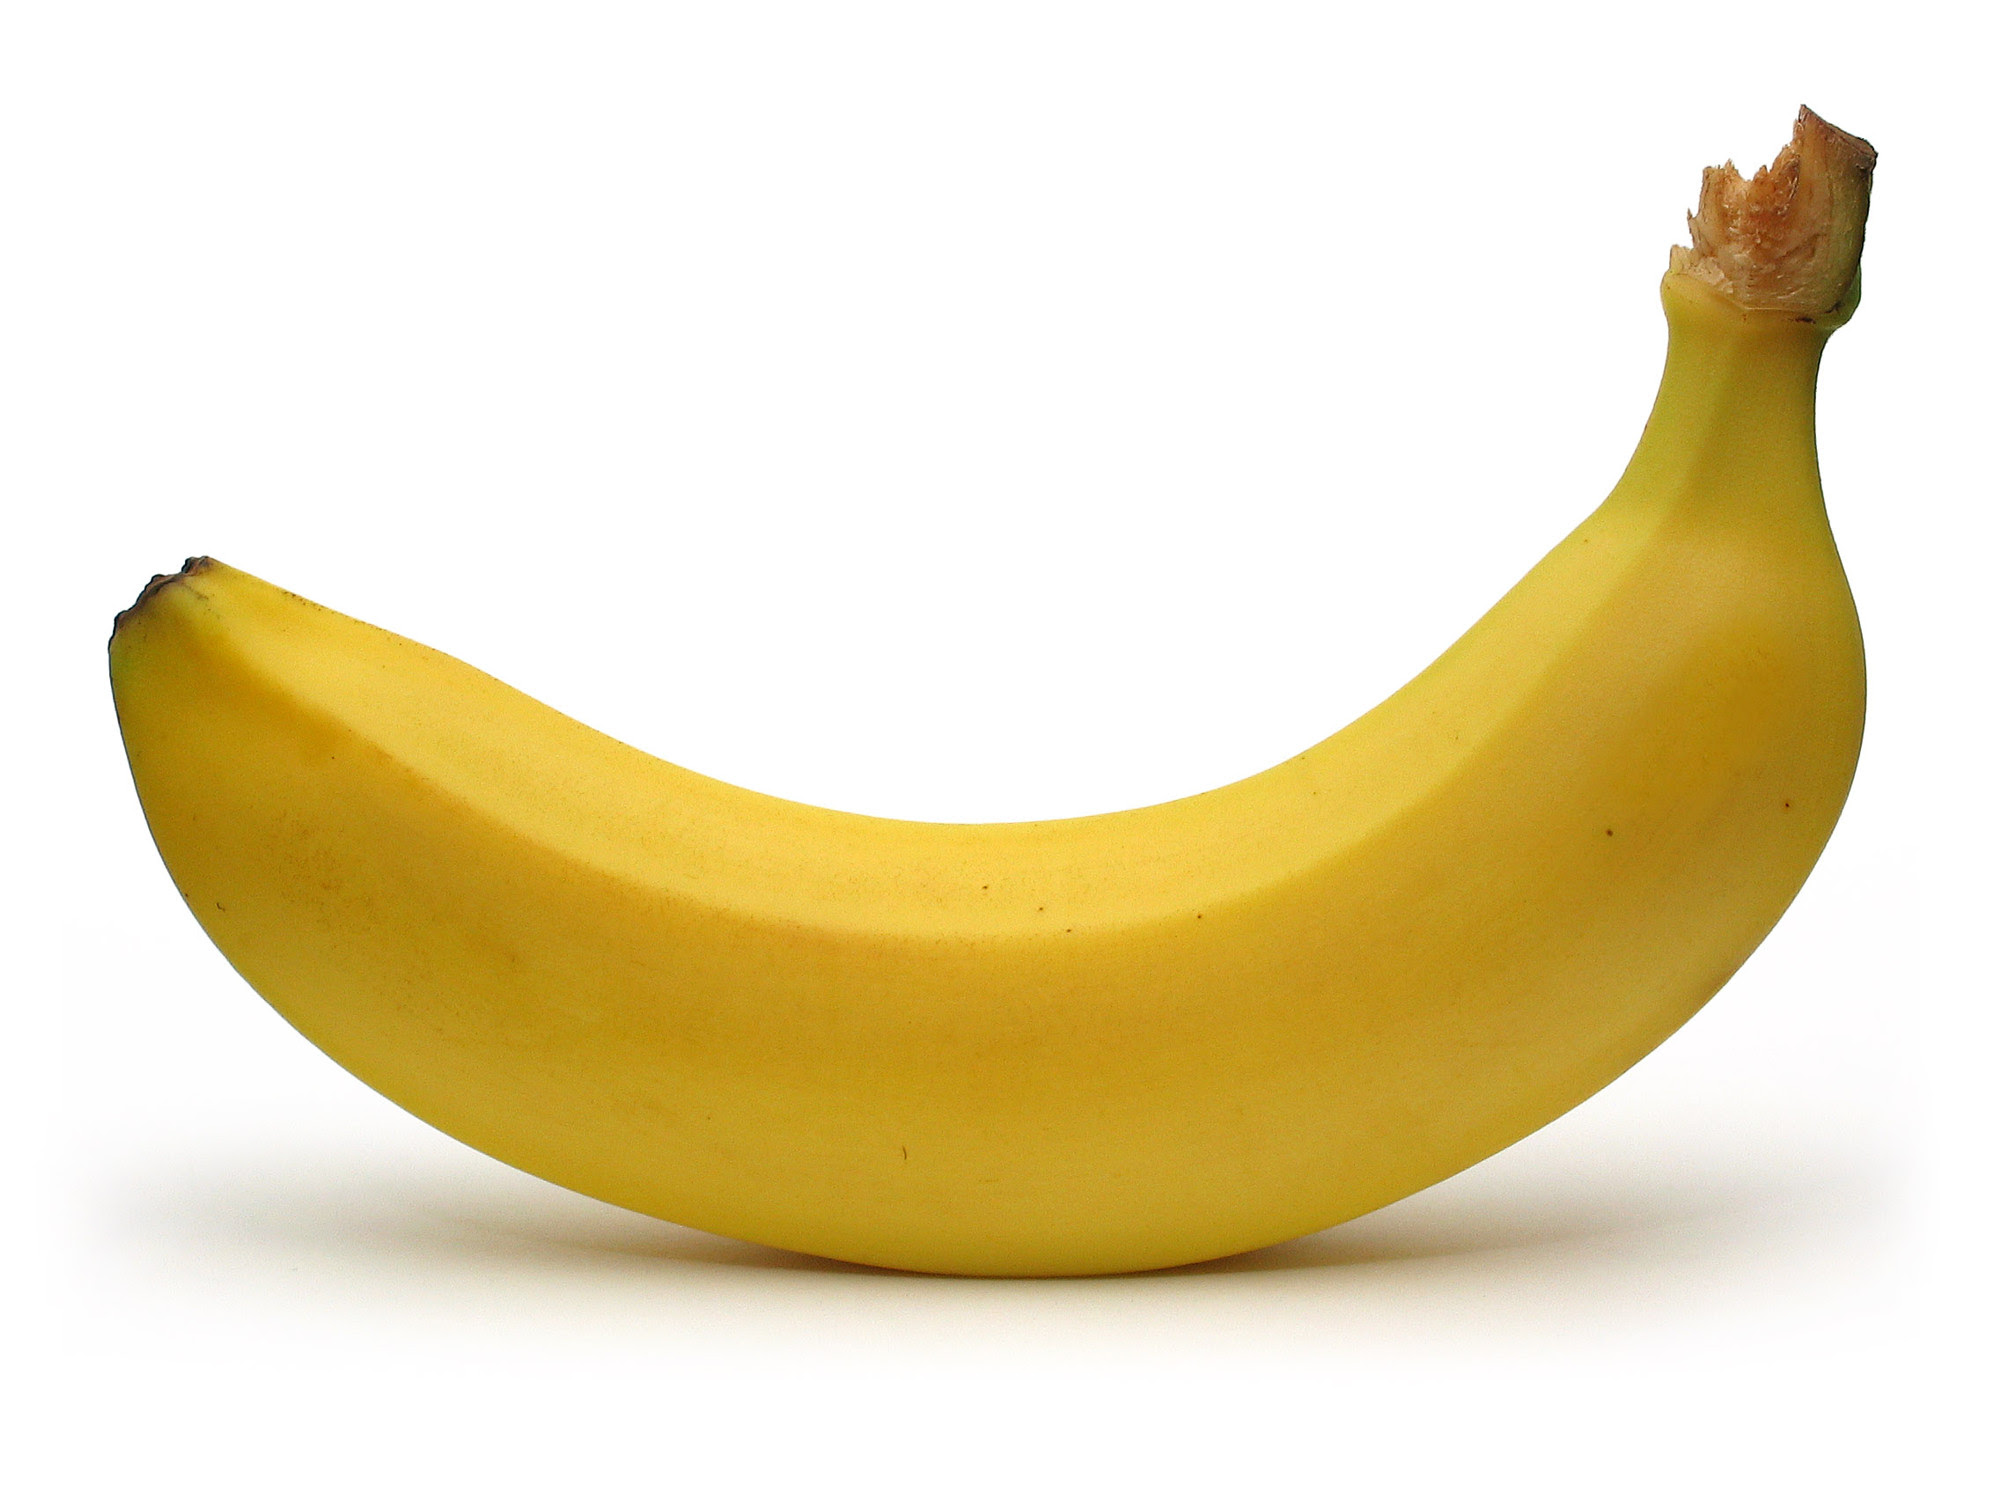 http://rismaeka.files.wordpress.com/2011/01/banana.jpg